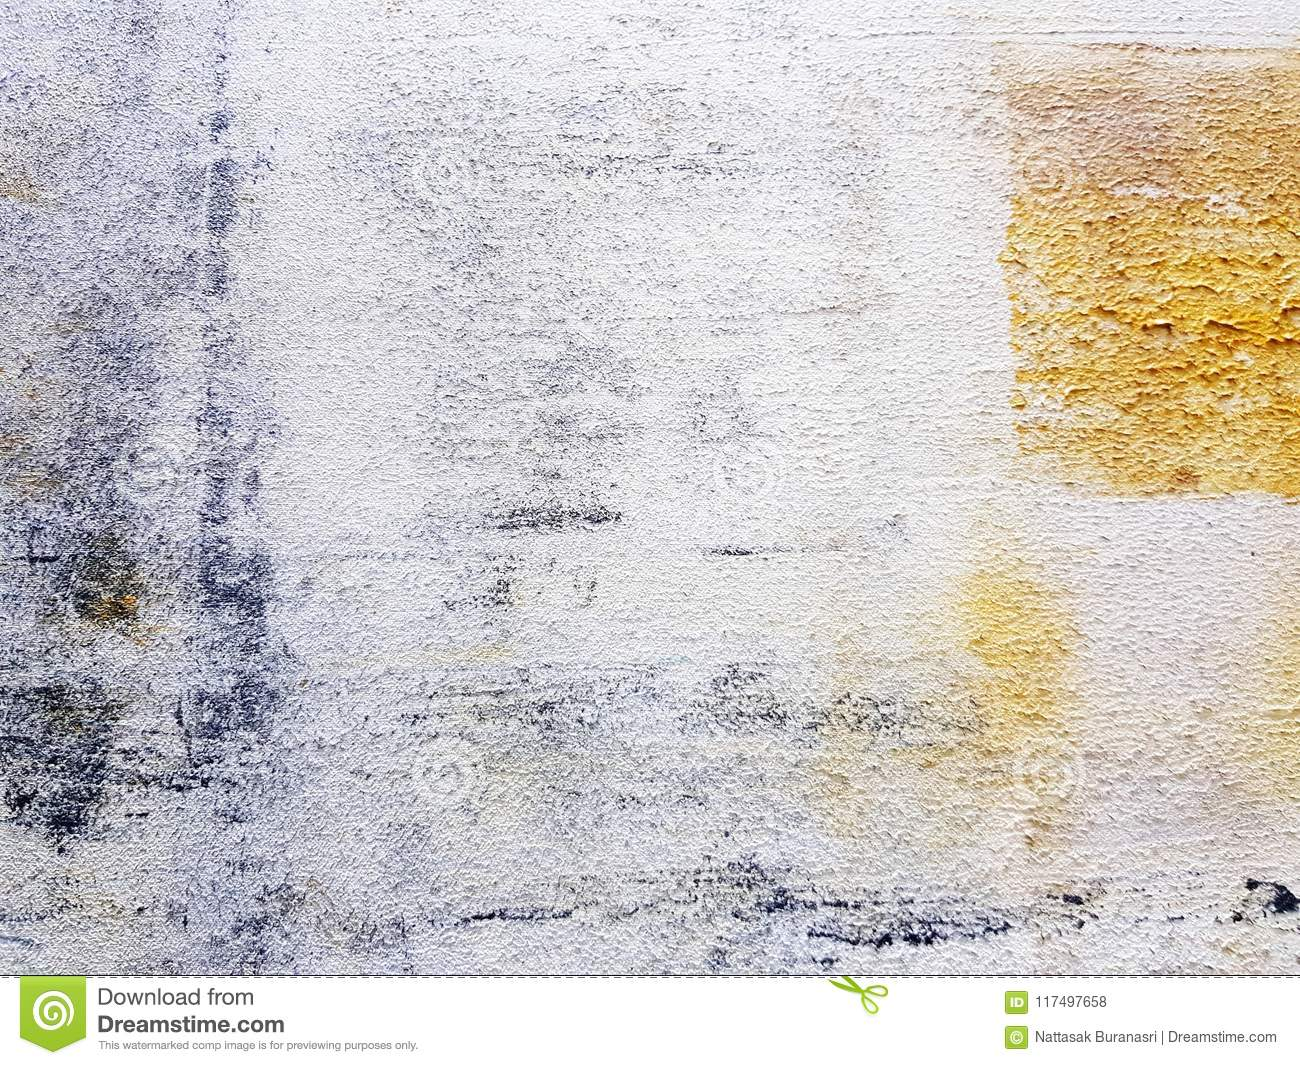 Colorful white art in acrylic Painted style on canvas frame White, Yellow, Black, brown color